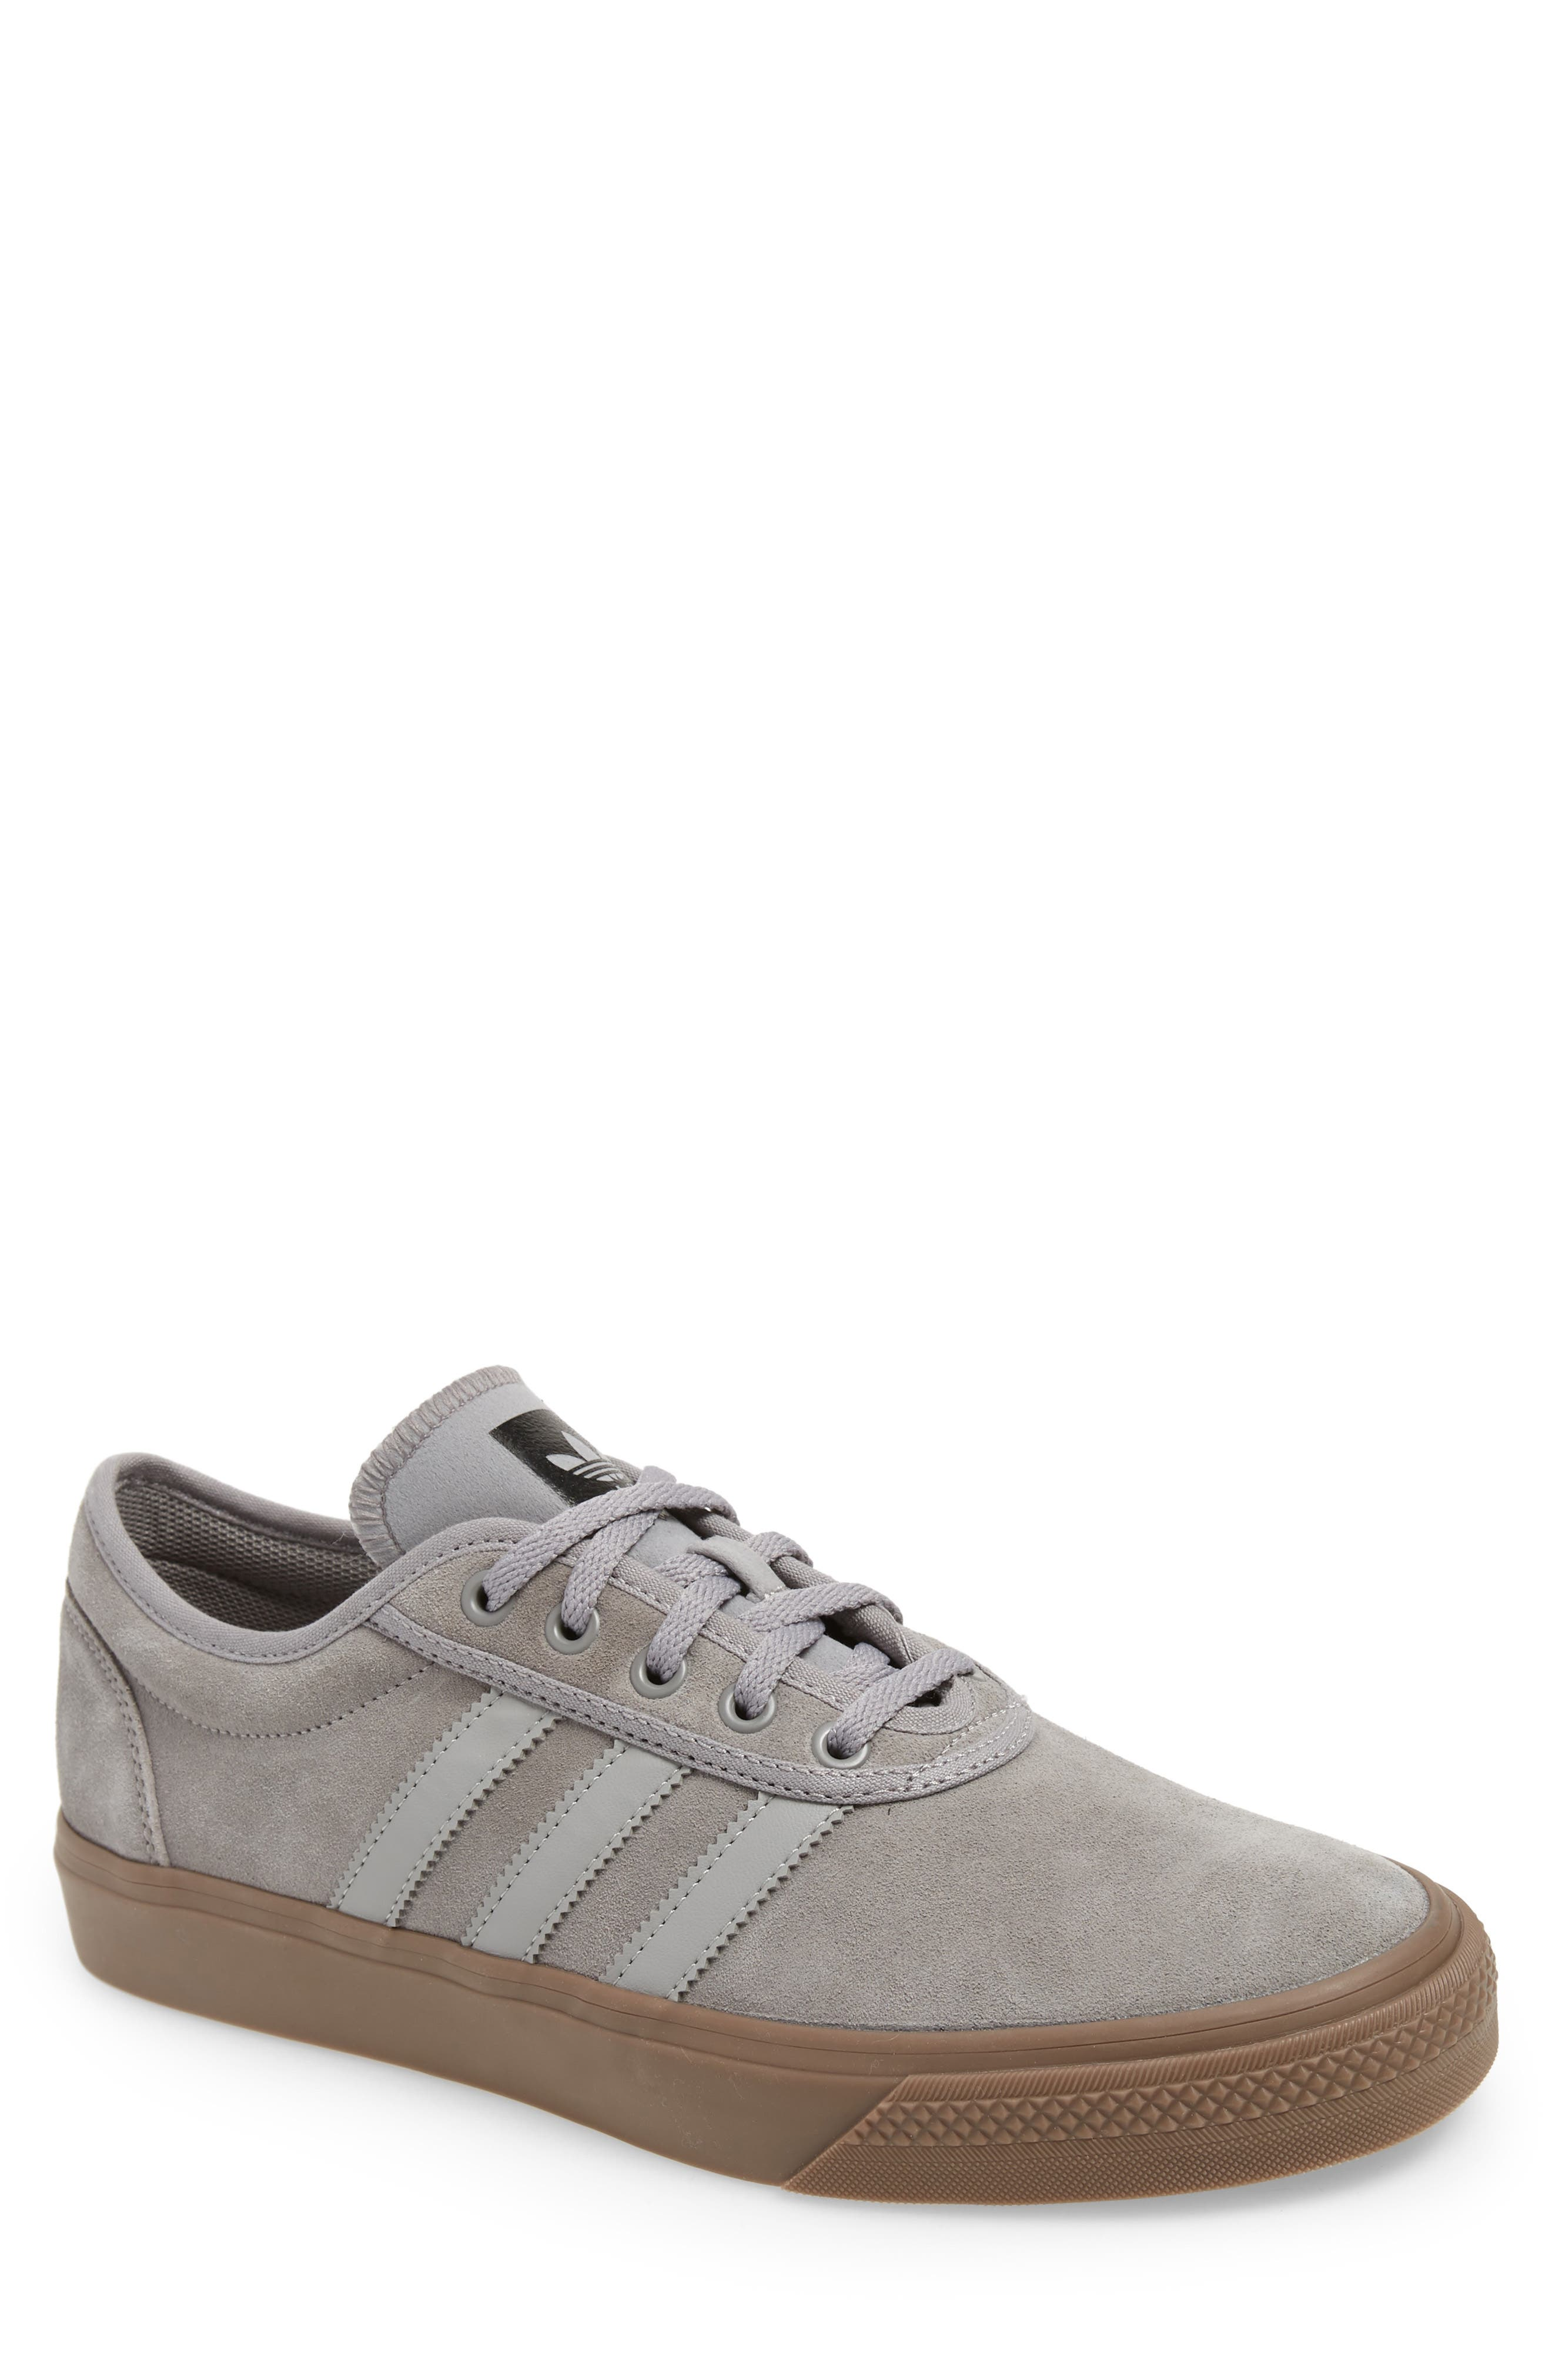 Adiease Skate Sneaker,                         Main,                         color, SOLID GREY/ SOLID GREY/ GUM